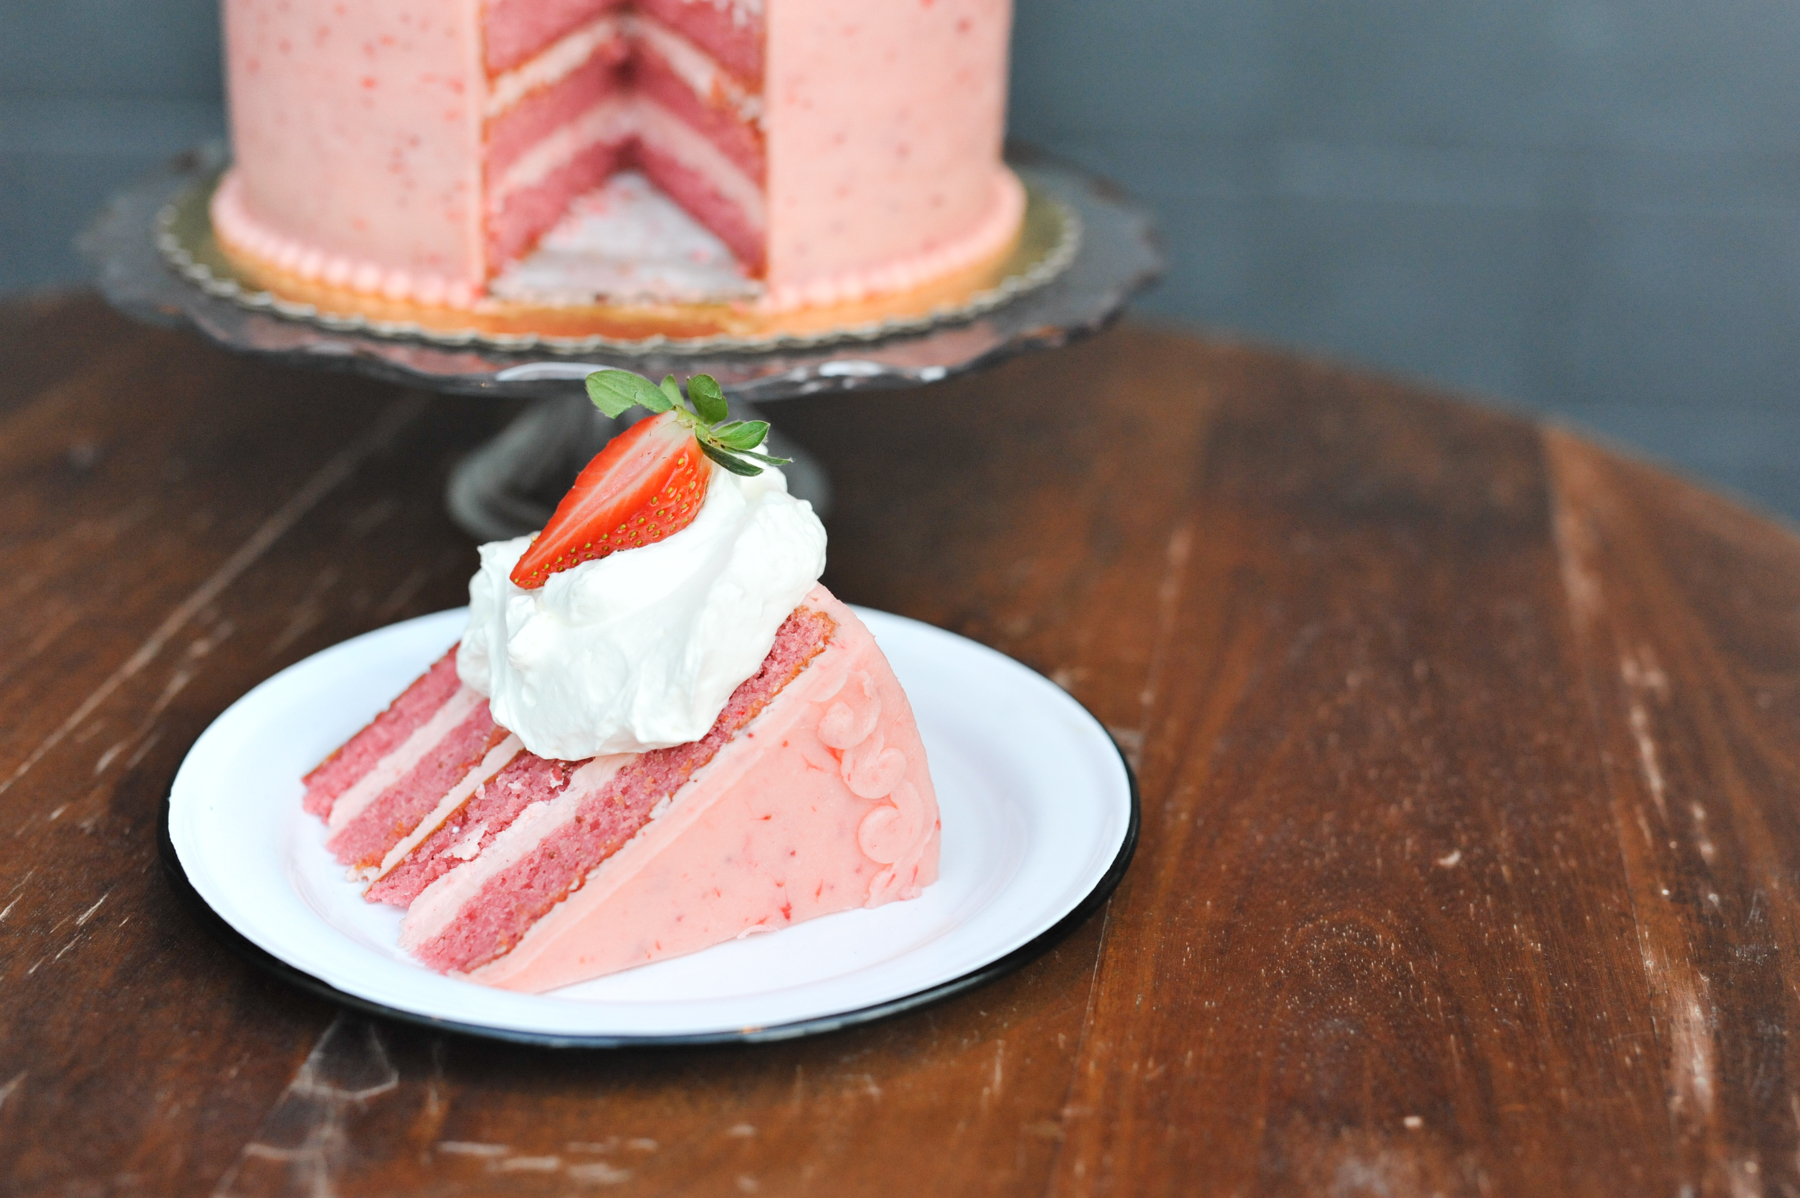 Jacoby's strawberry cake